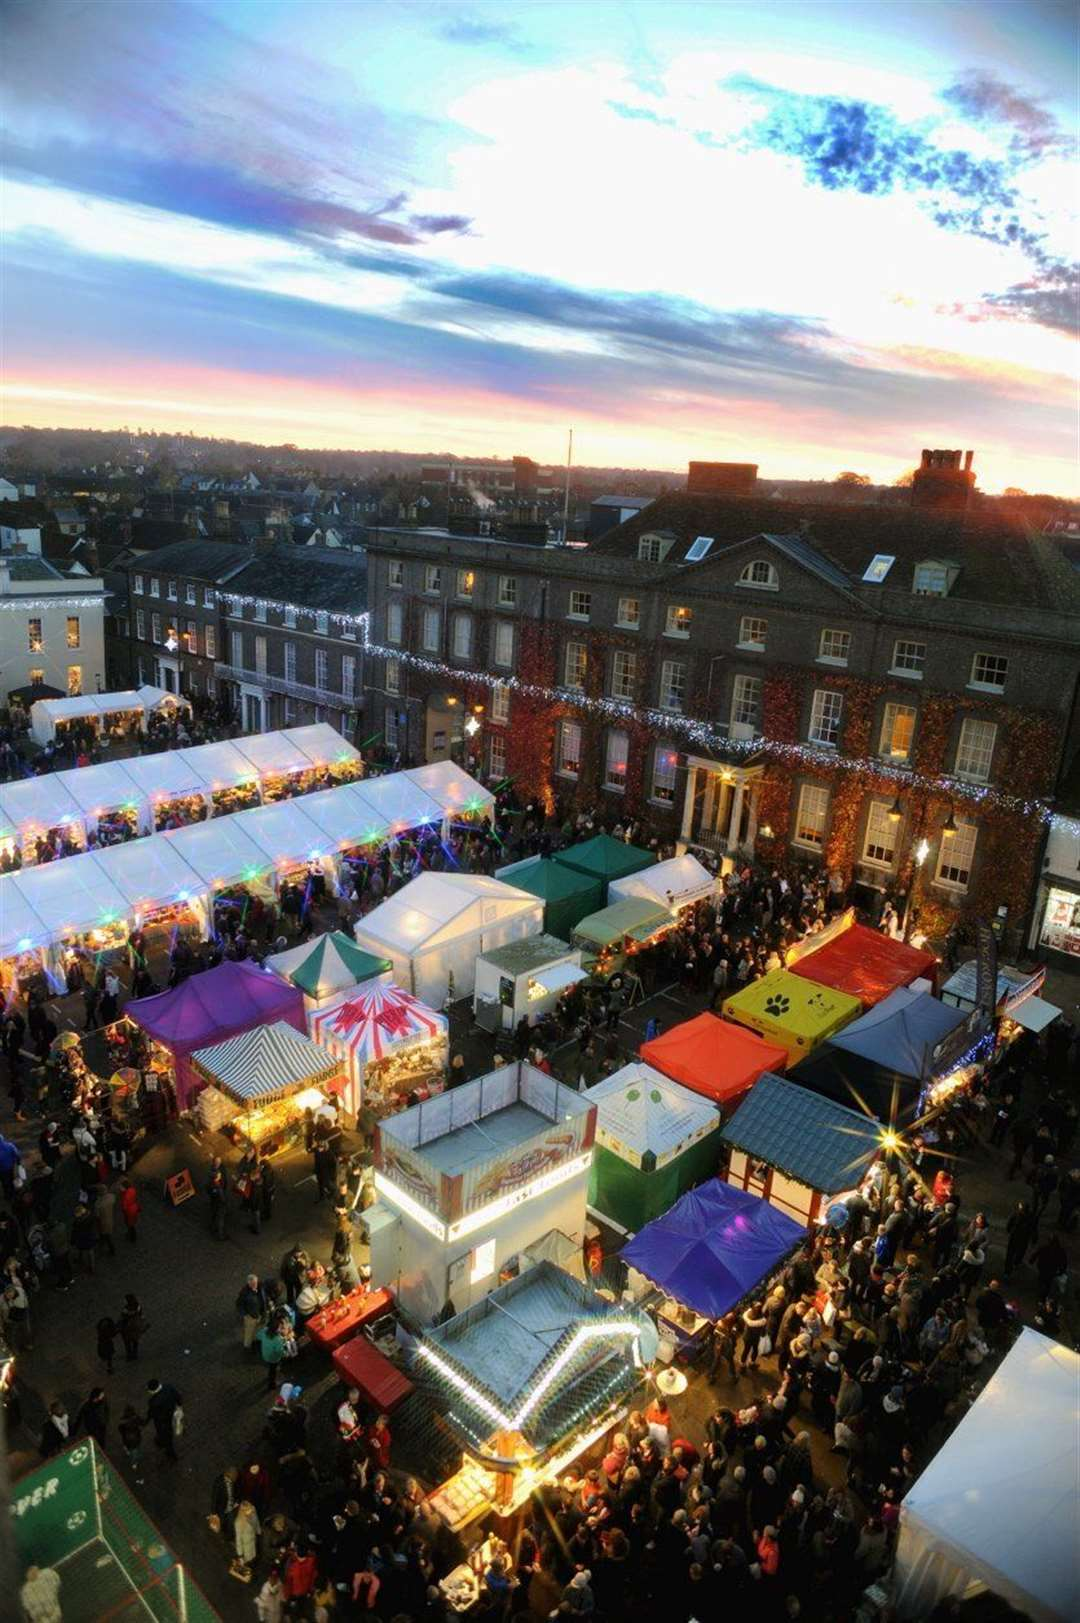 Bury St Edmunds Christmas Fayre: Picture by Andy Abbott.